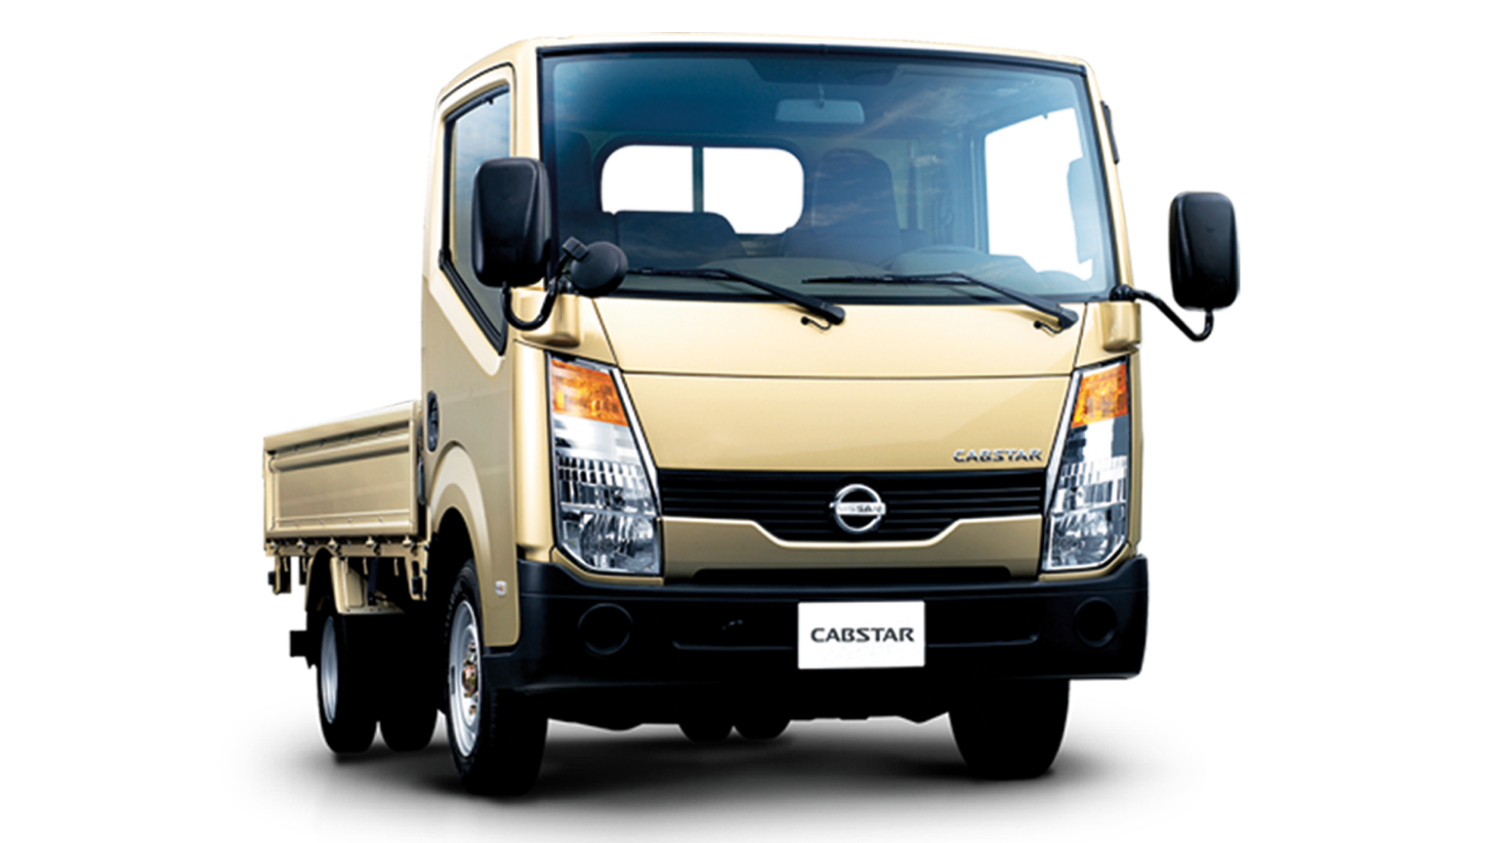 Cabstar - Your trusted truck